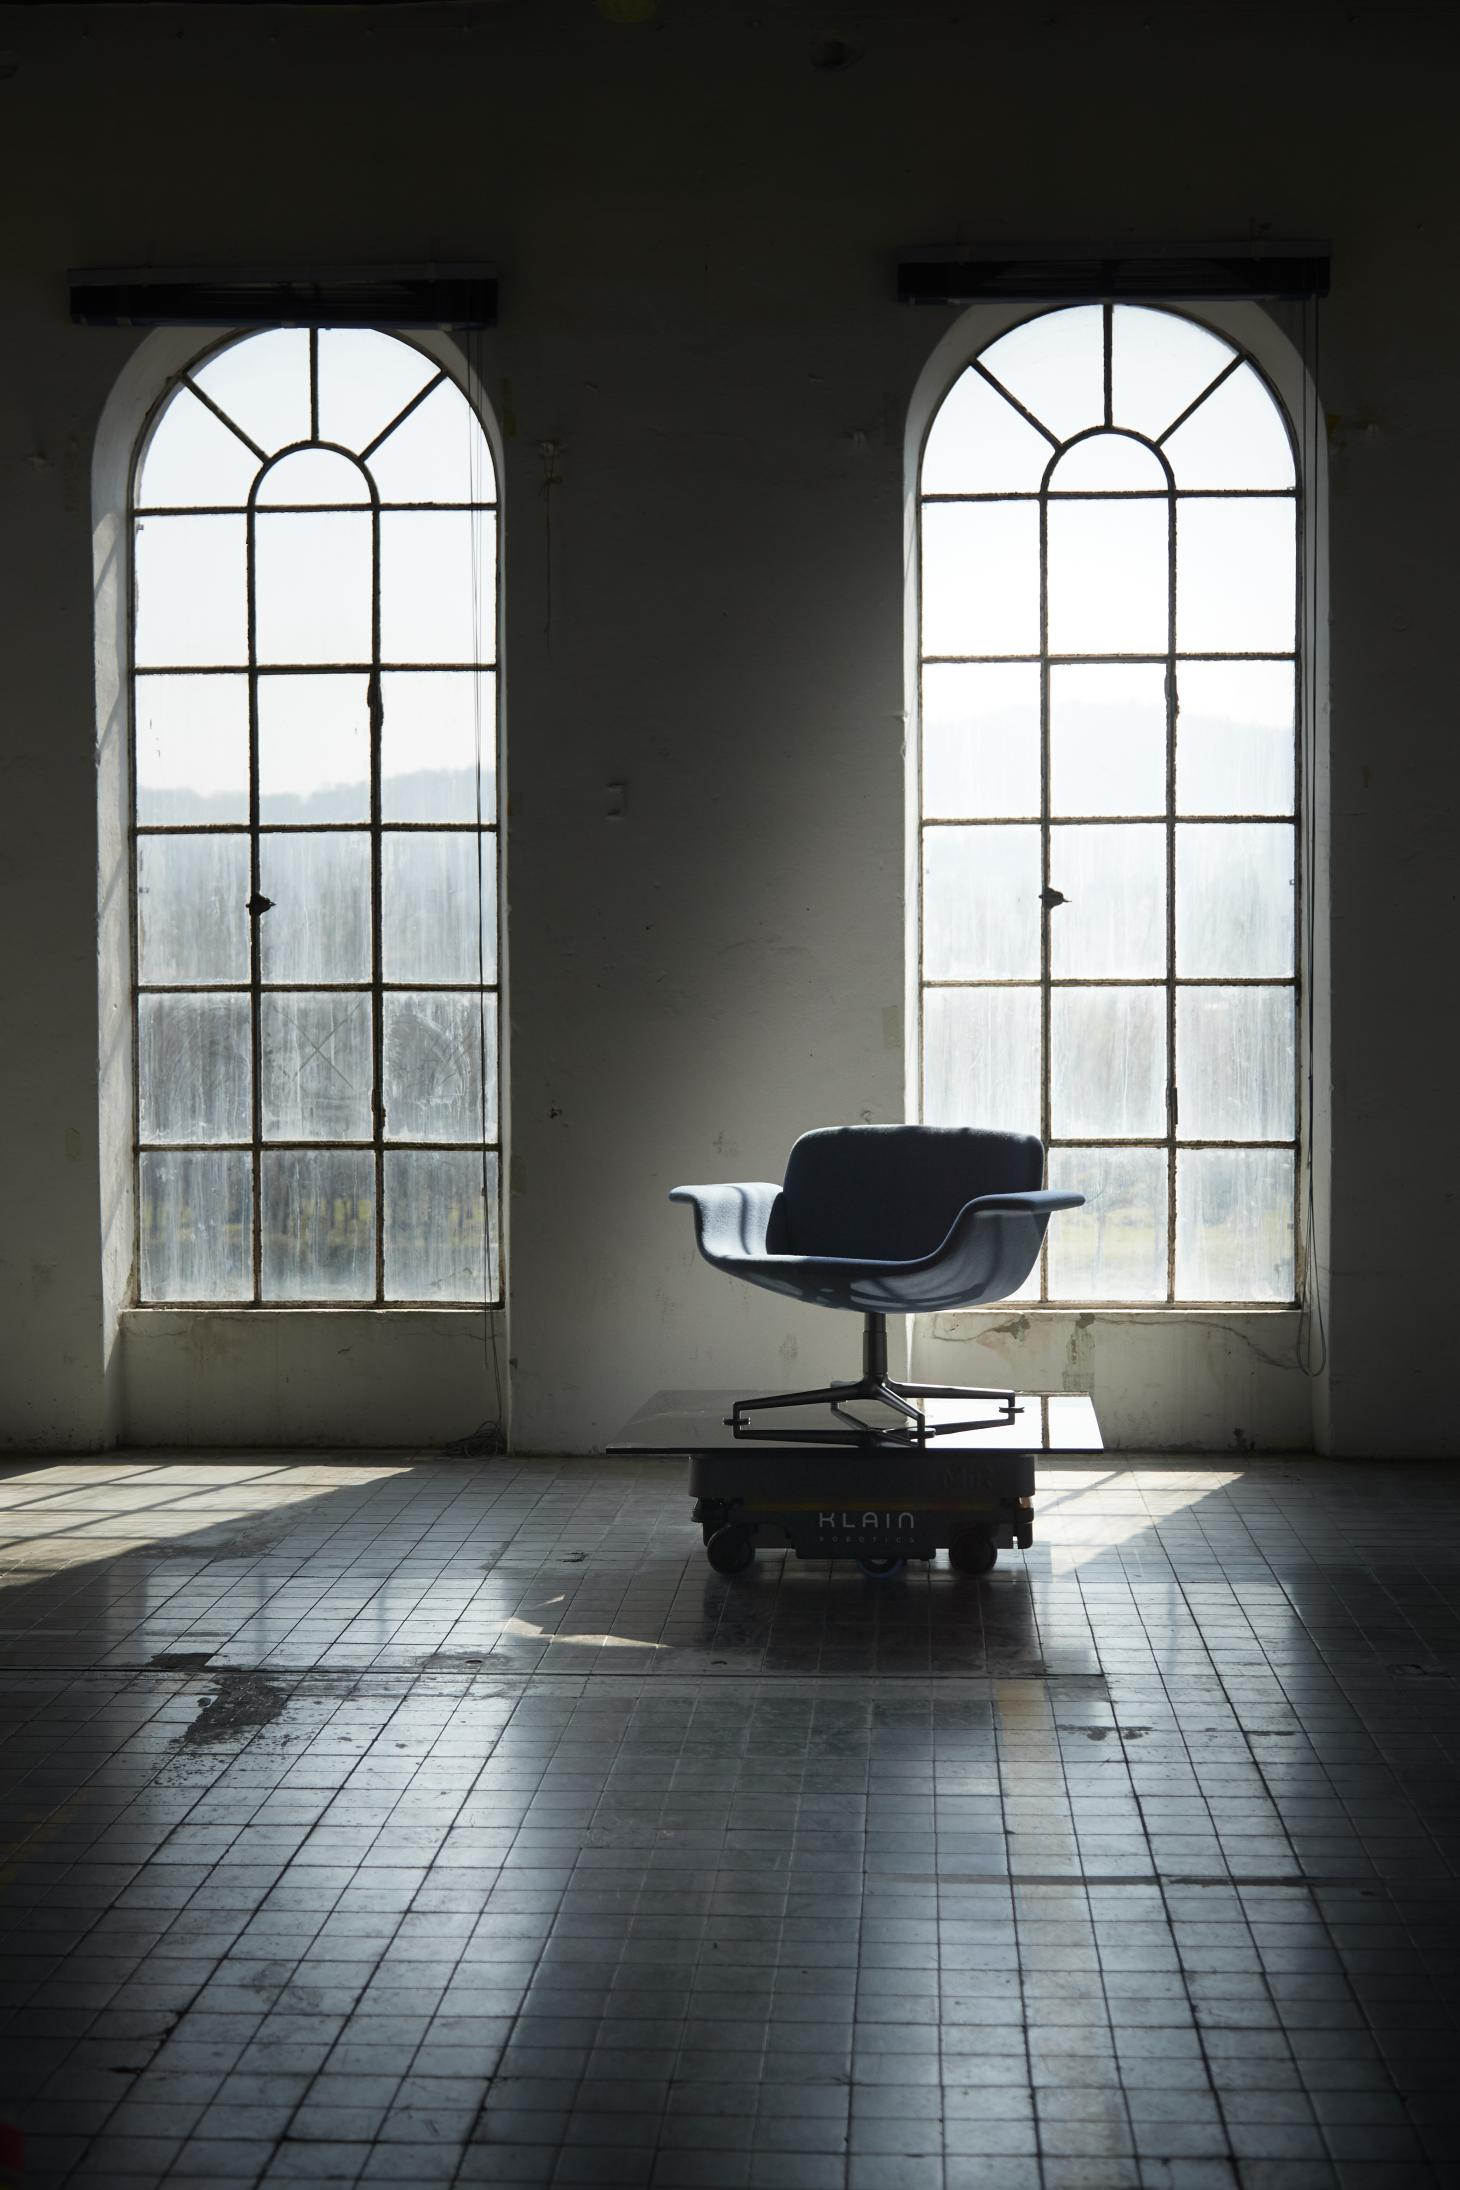 KN04 chair by Piero Lissoni for Knoll